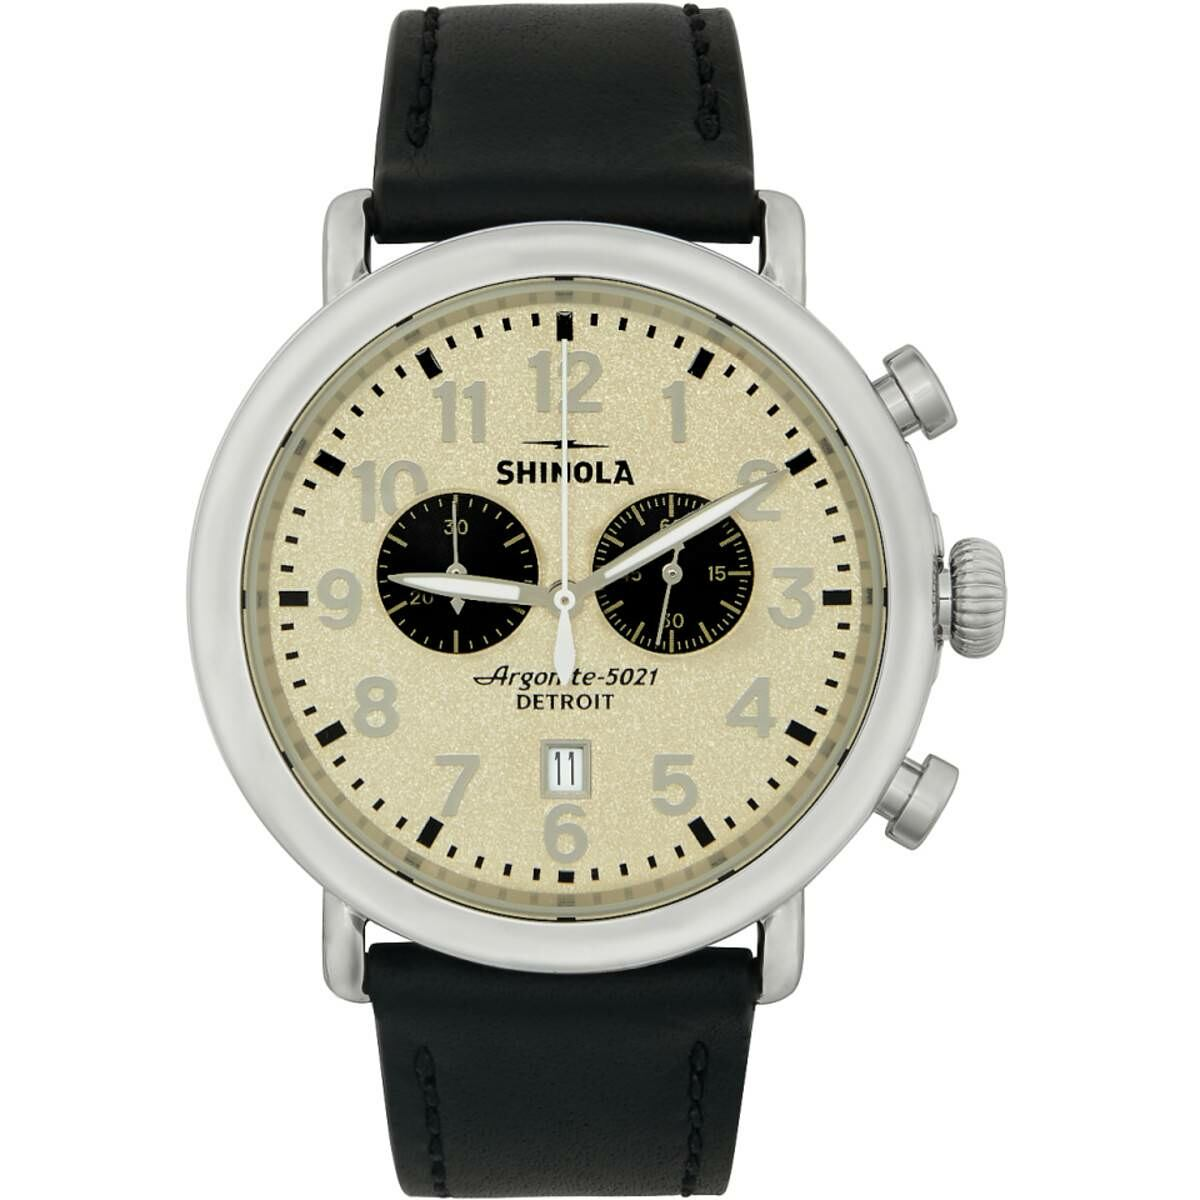 Shinola Silver and Off-White The Runwell Chrono 47mm Watch Ssense USA MEN Men ACCESSORIES Mens WATCHES